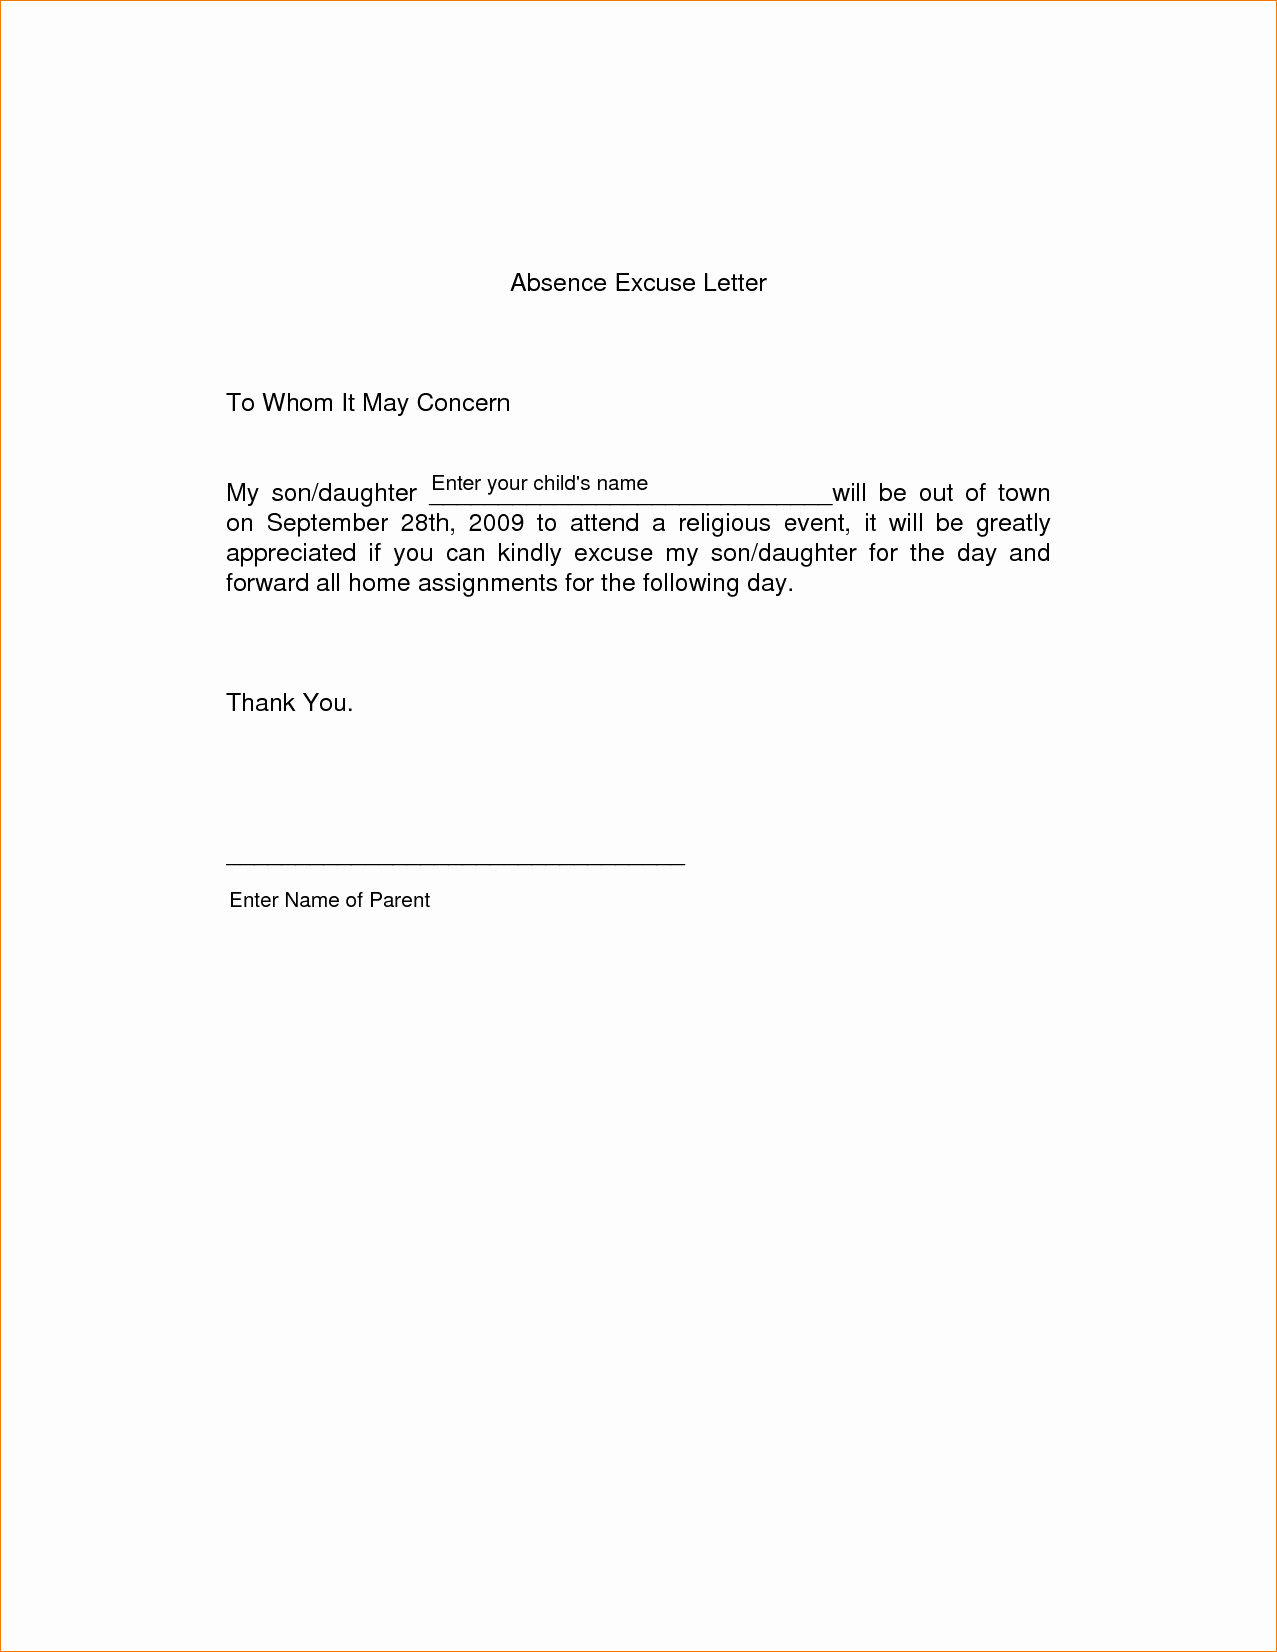 Absence Note Sample for School Fresh 11 Absence Excuse Letteragenda Template Sample